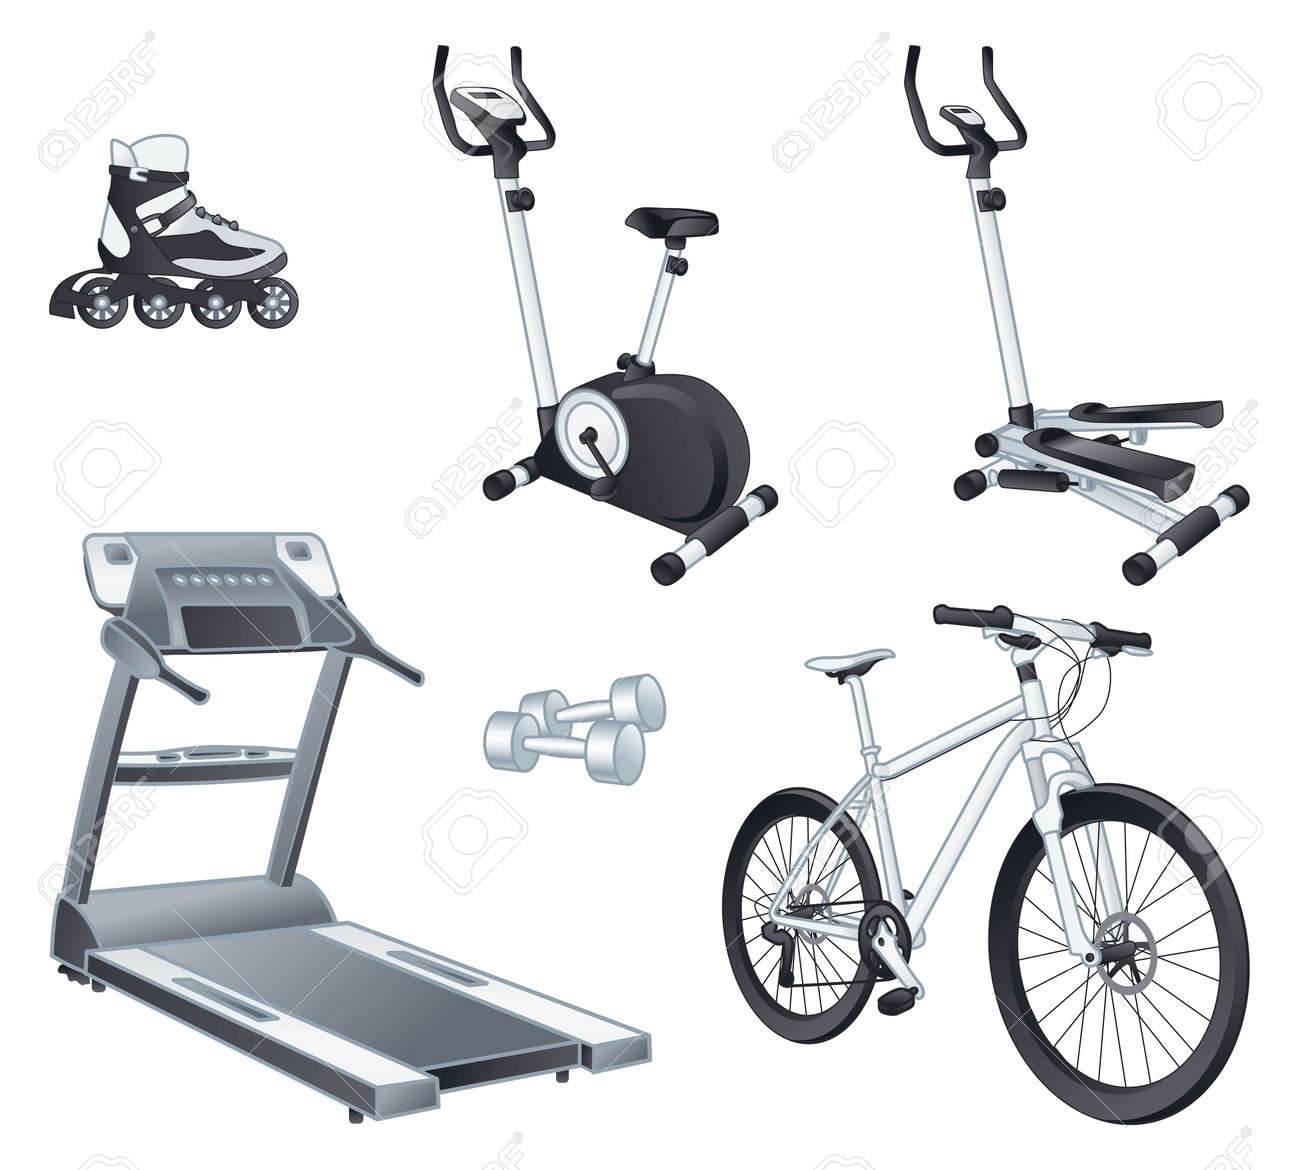 Fitness and sport equipment: rollers, stationary bicycle, stepper, treadmill, dumbbells, bicycle. - 20326022